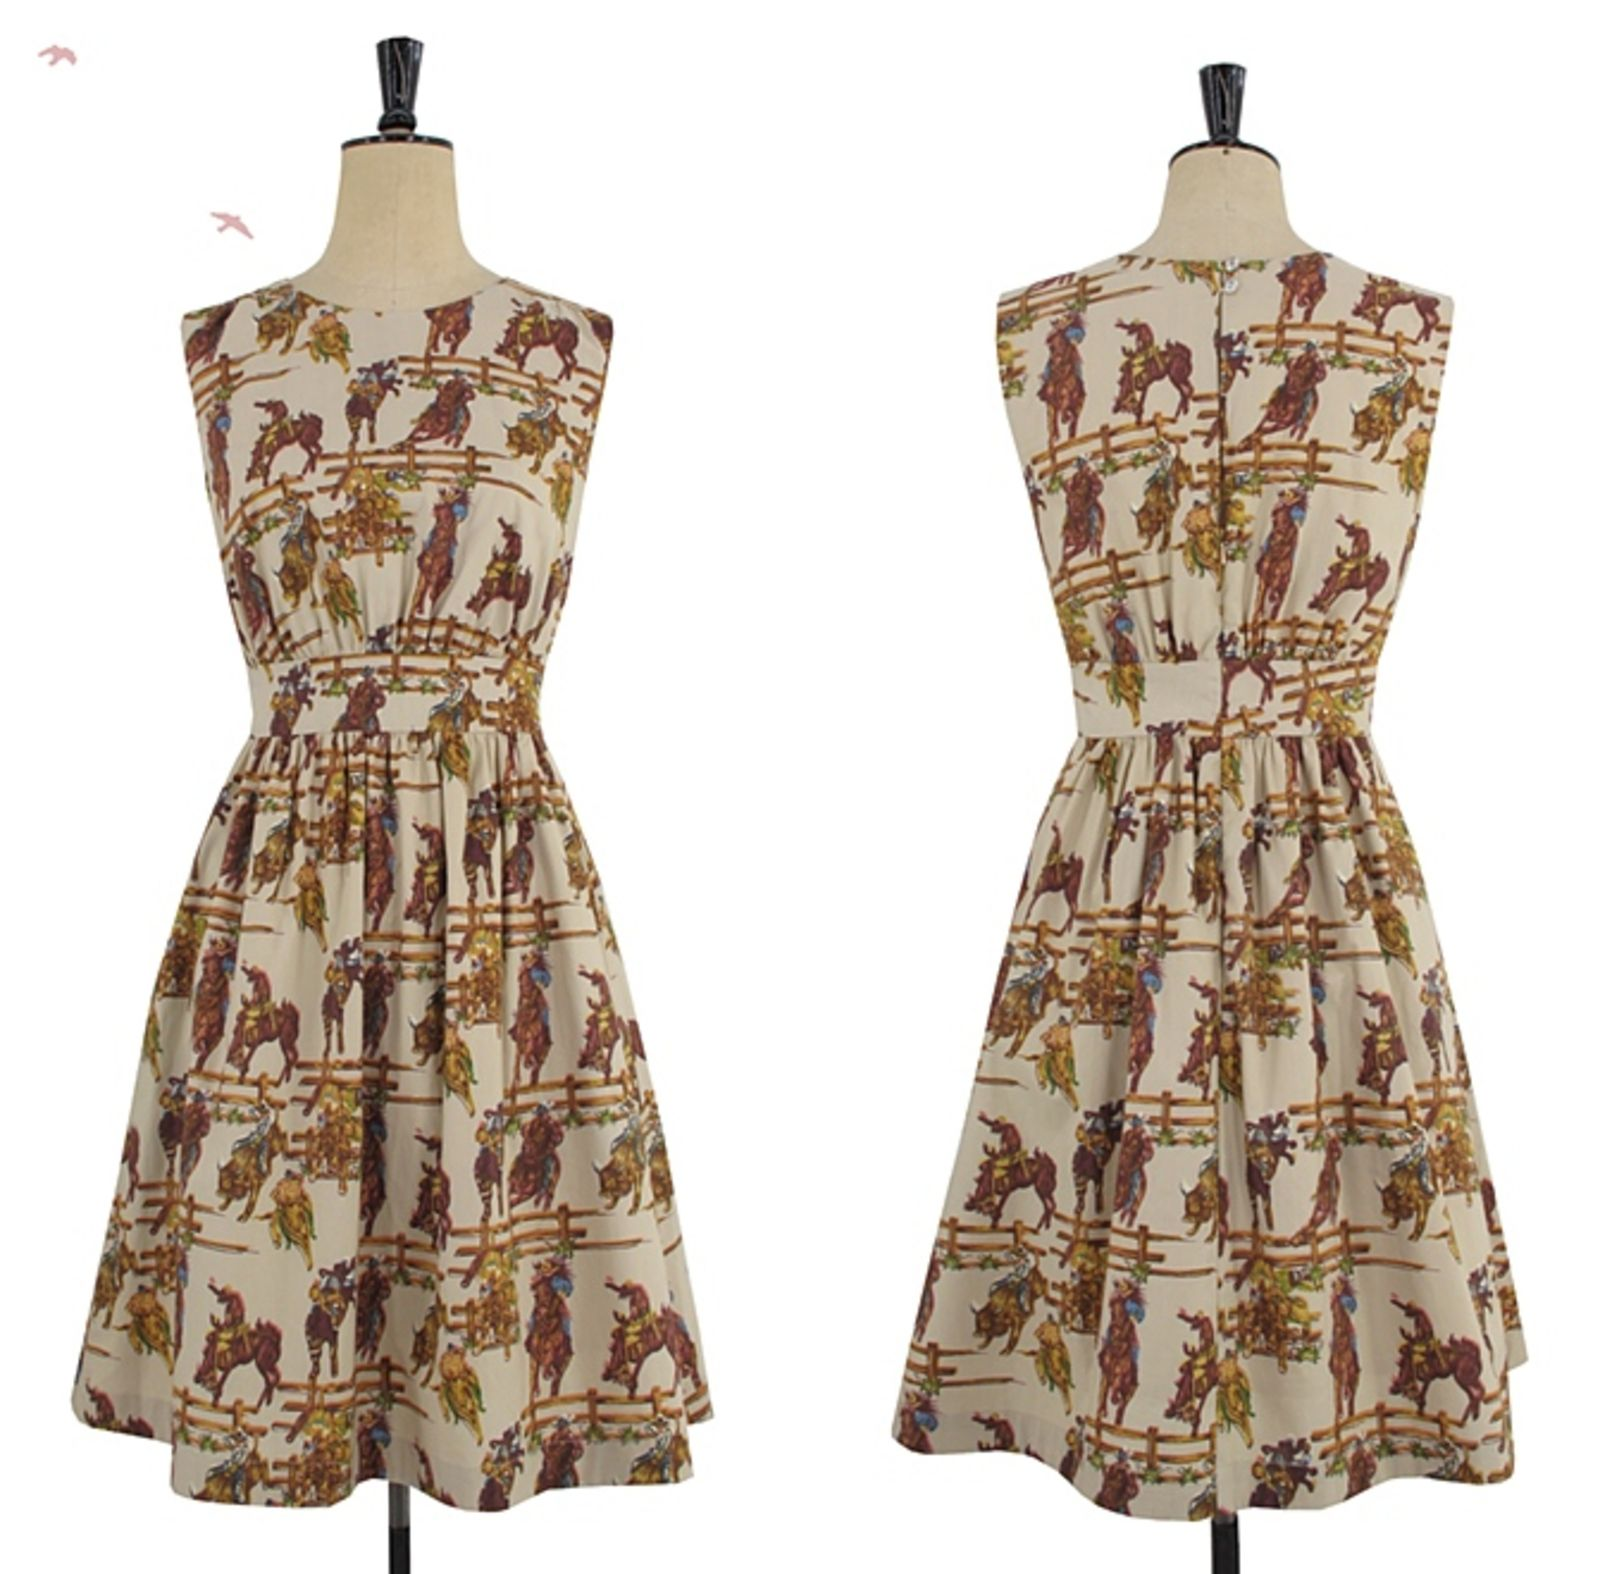 I want the Lucy dress in basically every single print available.